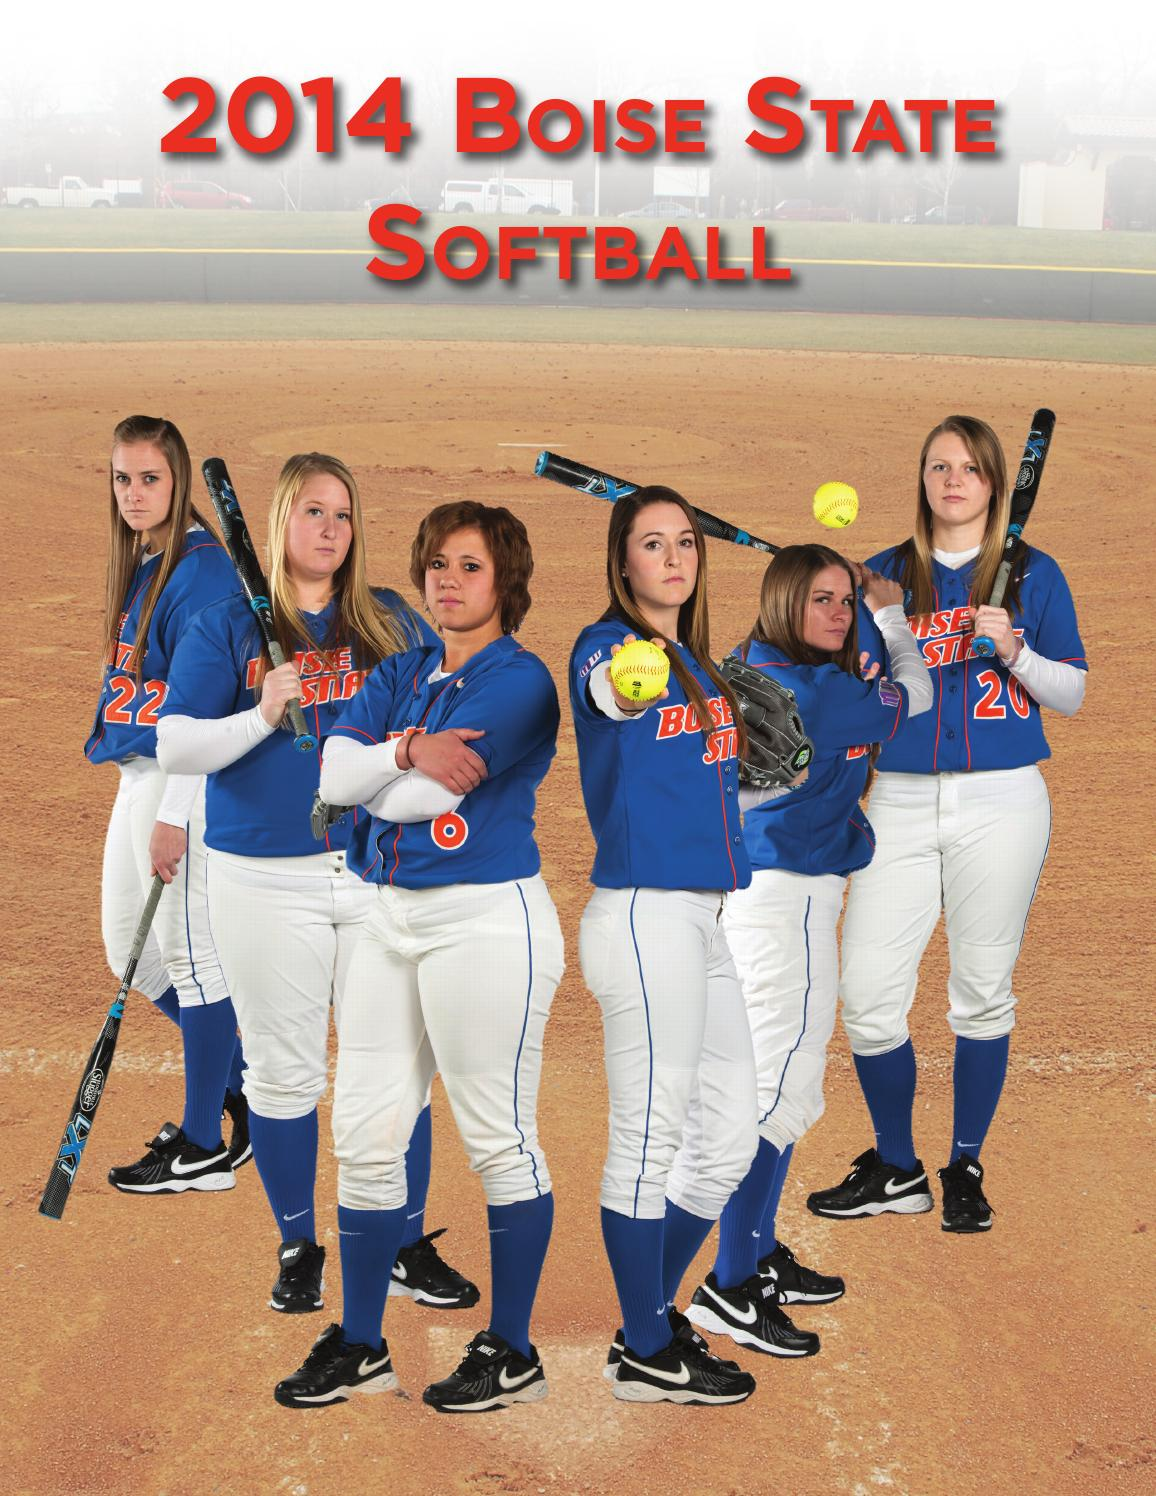 2014 boise state softball media guide by boise state